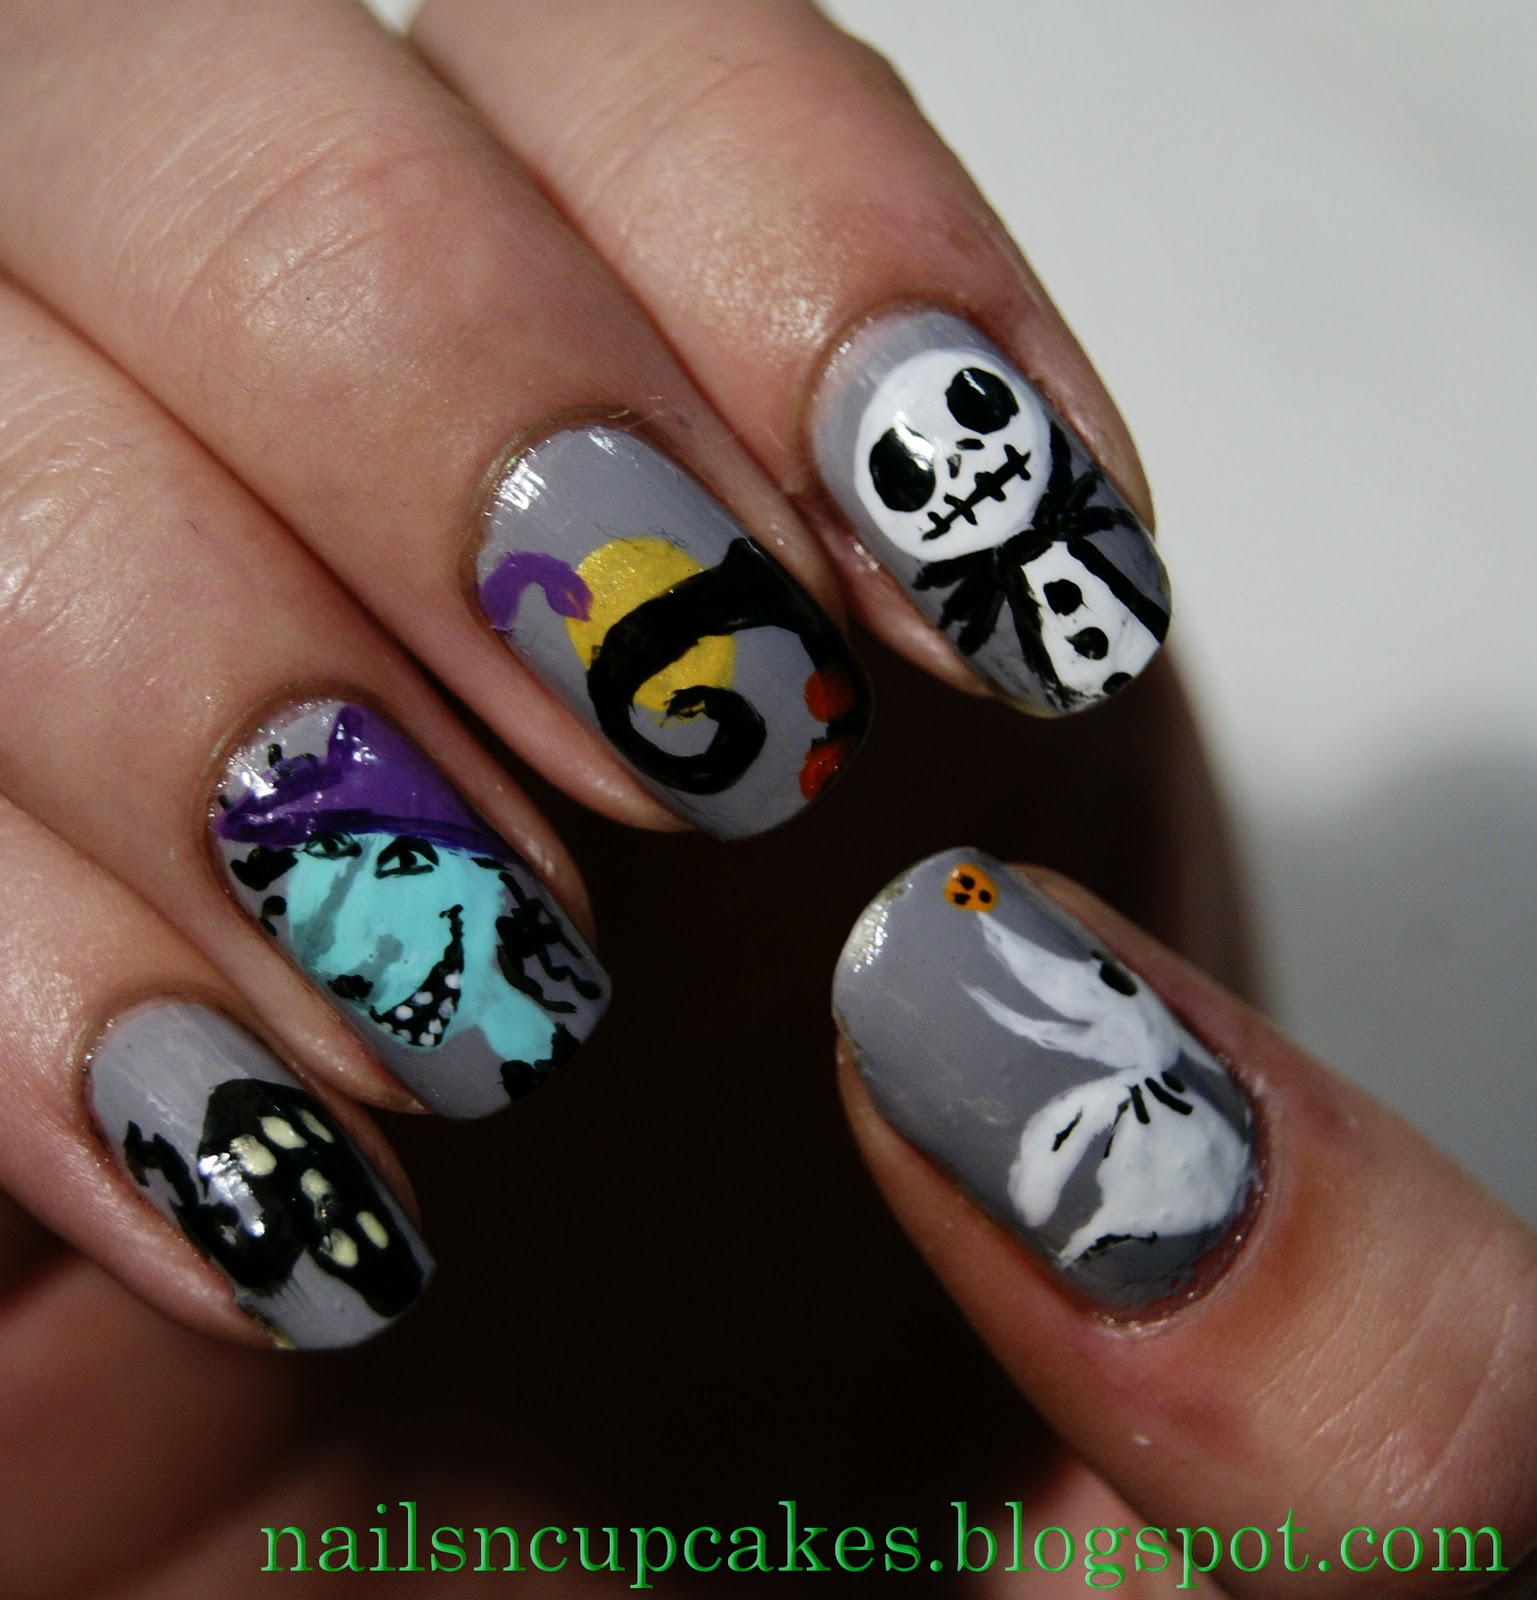 NailsN\'cupcakes: Nightmare before Christmas nails